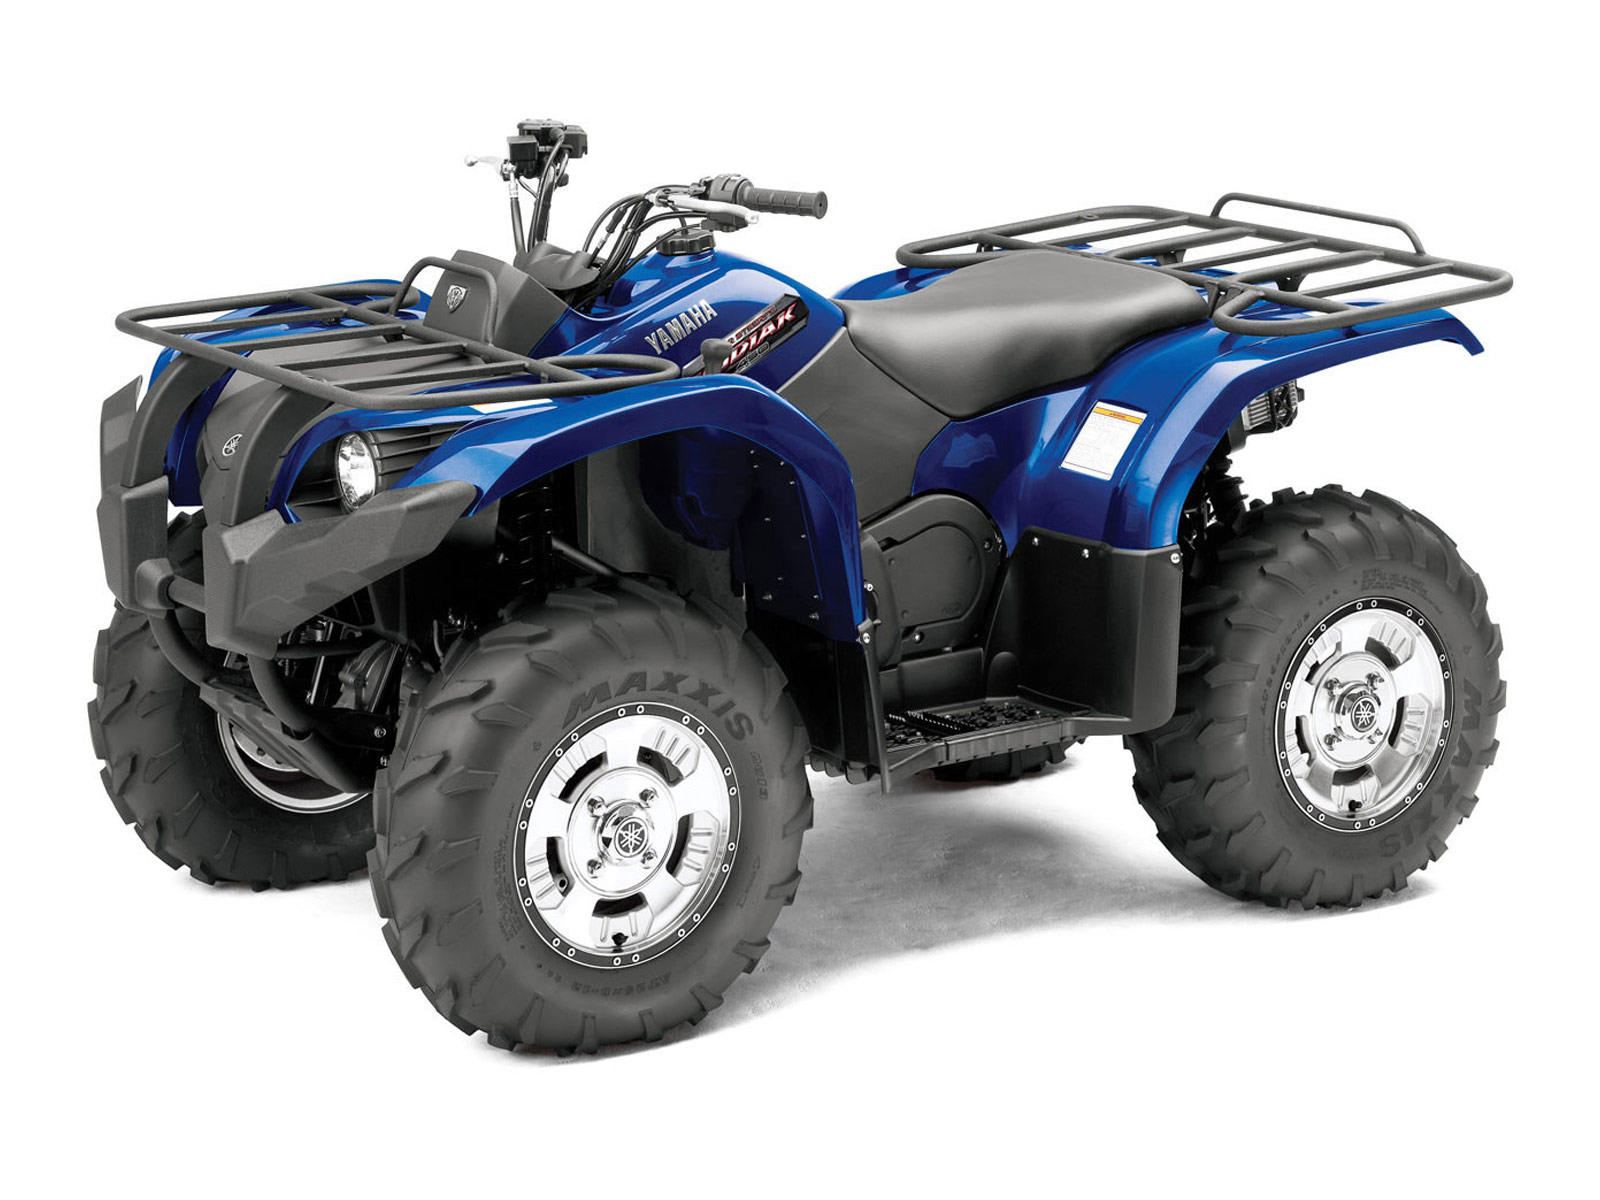 Owners Manual Yamaha Grizzly 350 4x4 2017 Library Download Book (PDF and  DOC) Random Related owners manual yamaha grizzly 350 4x4 2017: 2016 Mercury  15hp ...